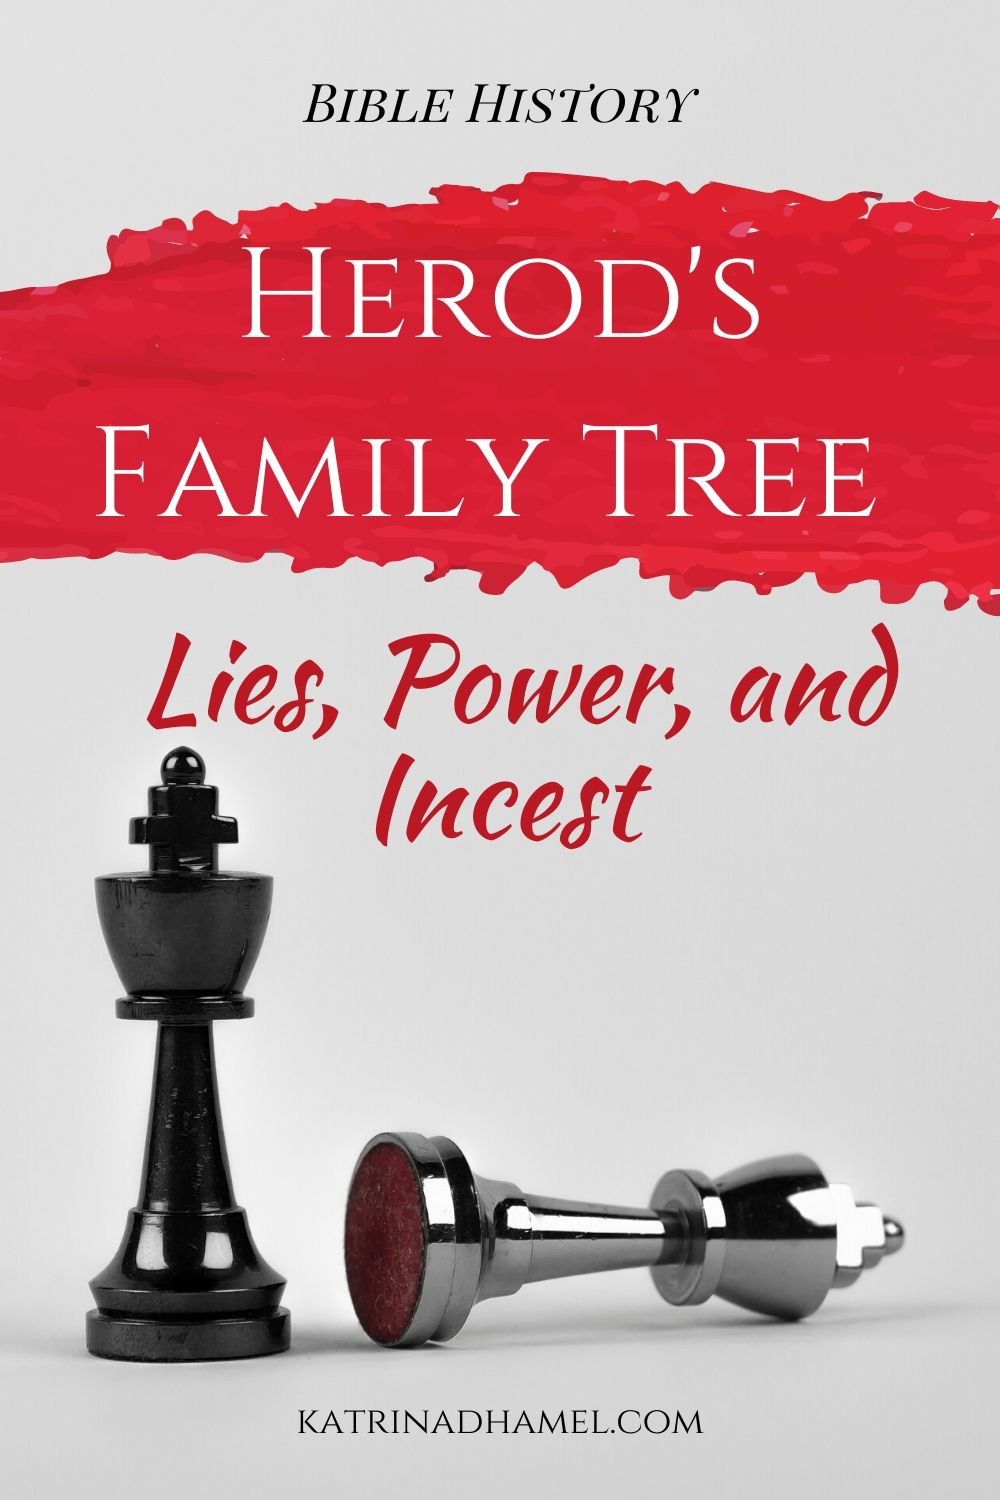 Bible History: Herod's Family Tree: Lies, Power, and Incest with image of toppled king chess piece